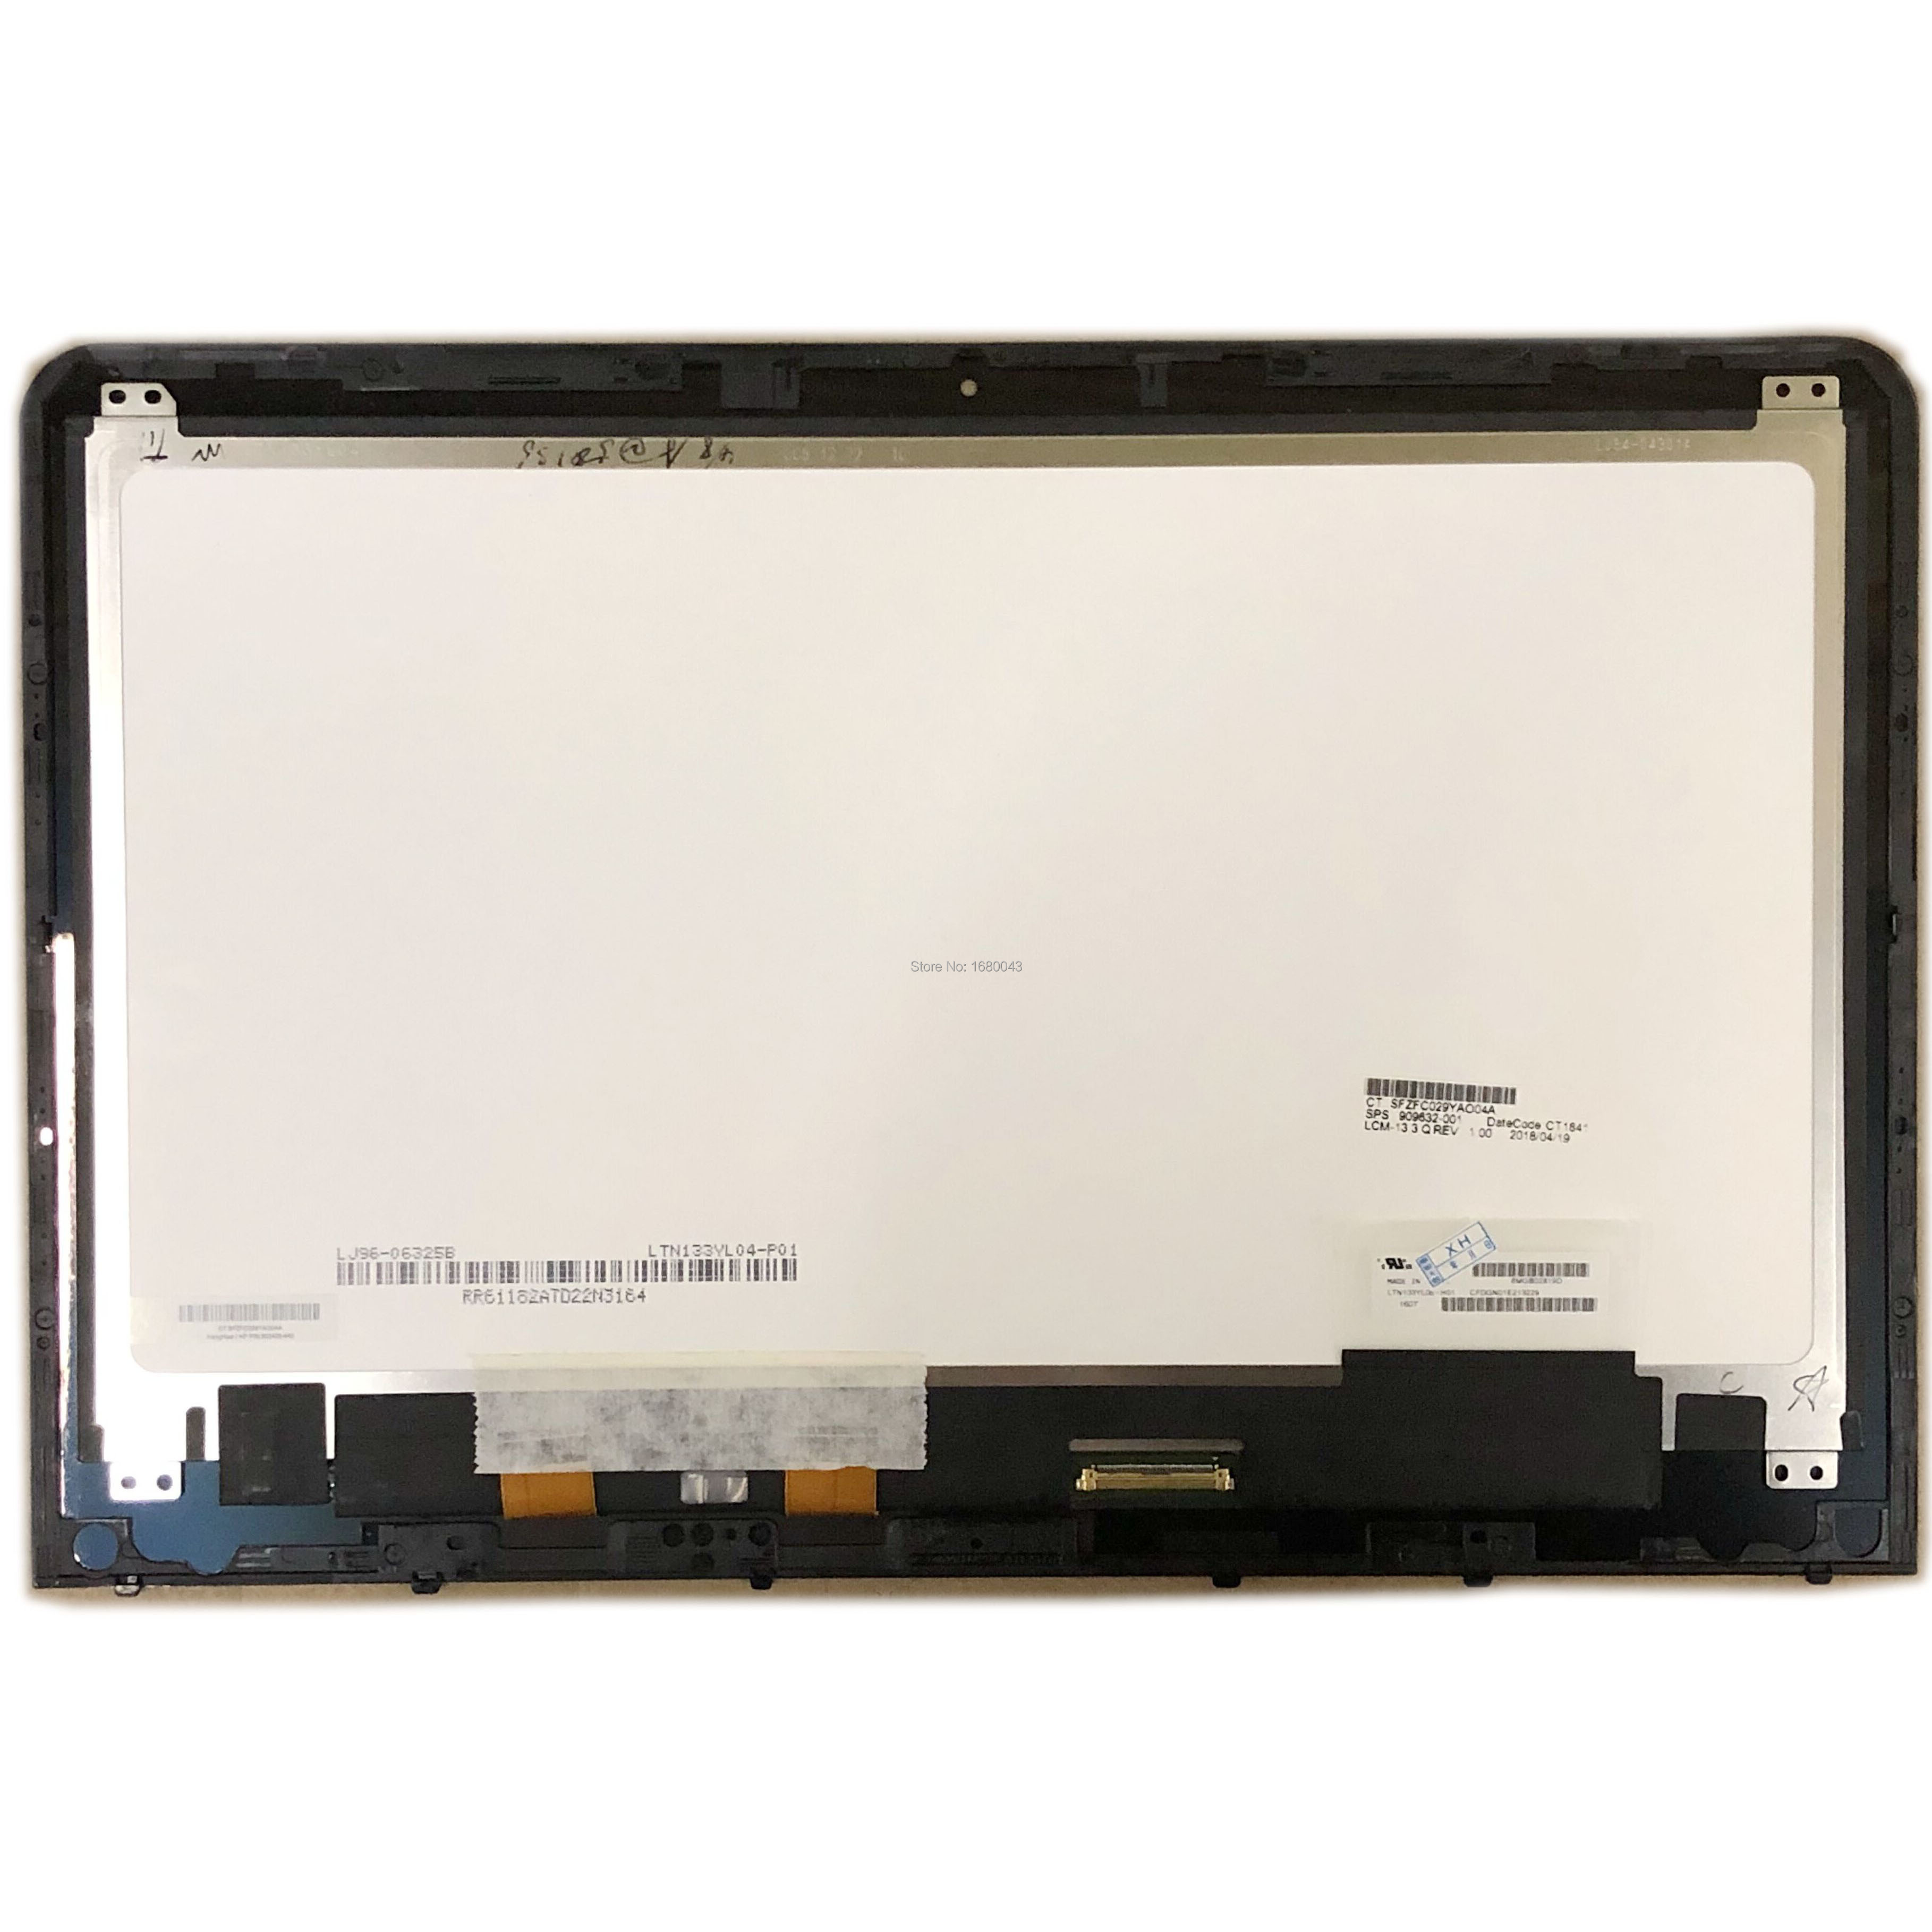 LTN133YL06  LTN133YL04 LCD SCREEN Digitizer Assembly Frame Replacement Parts For HP Envy 13-A 13-AB 13-ab015tu SPS 909632-001